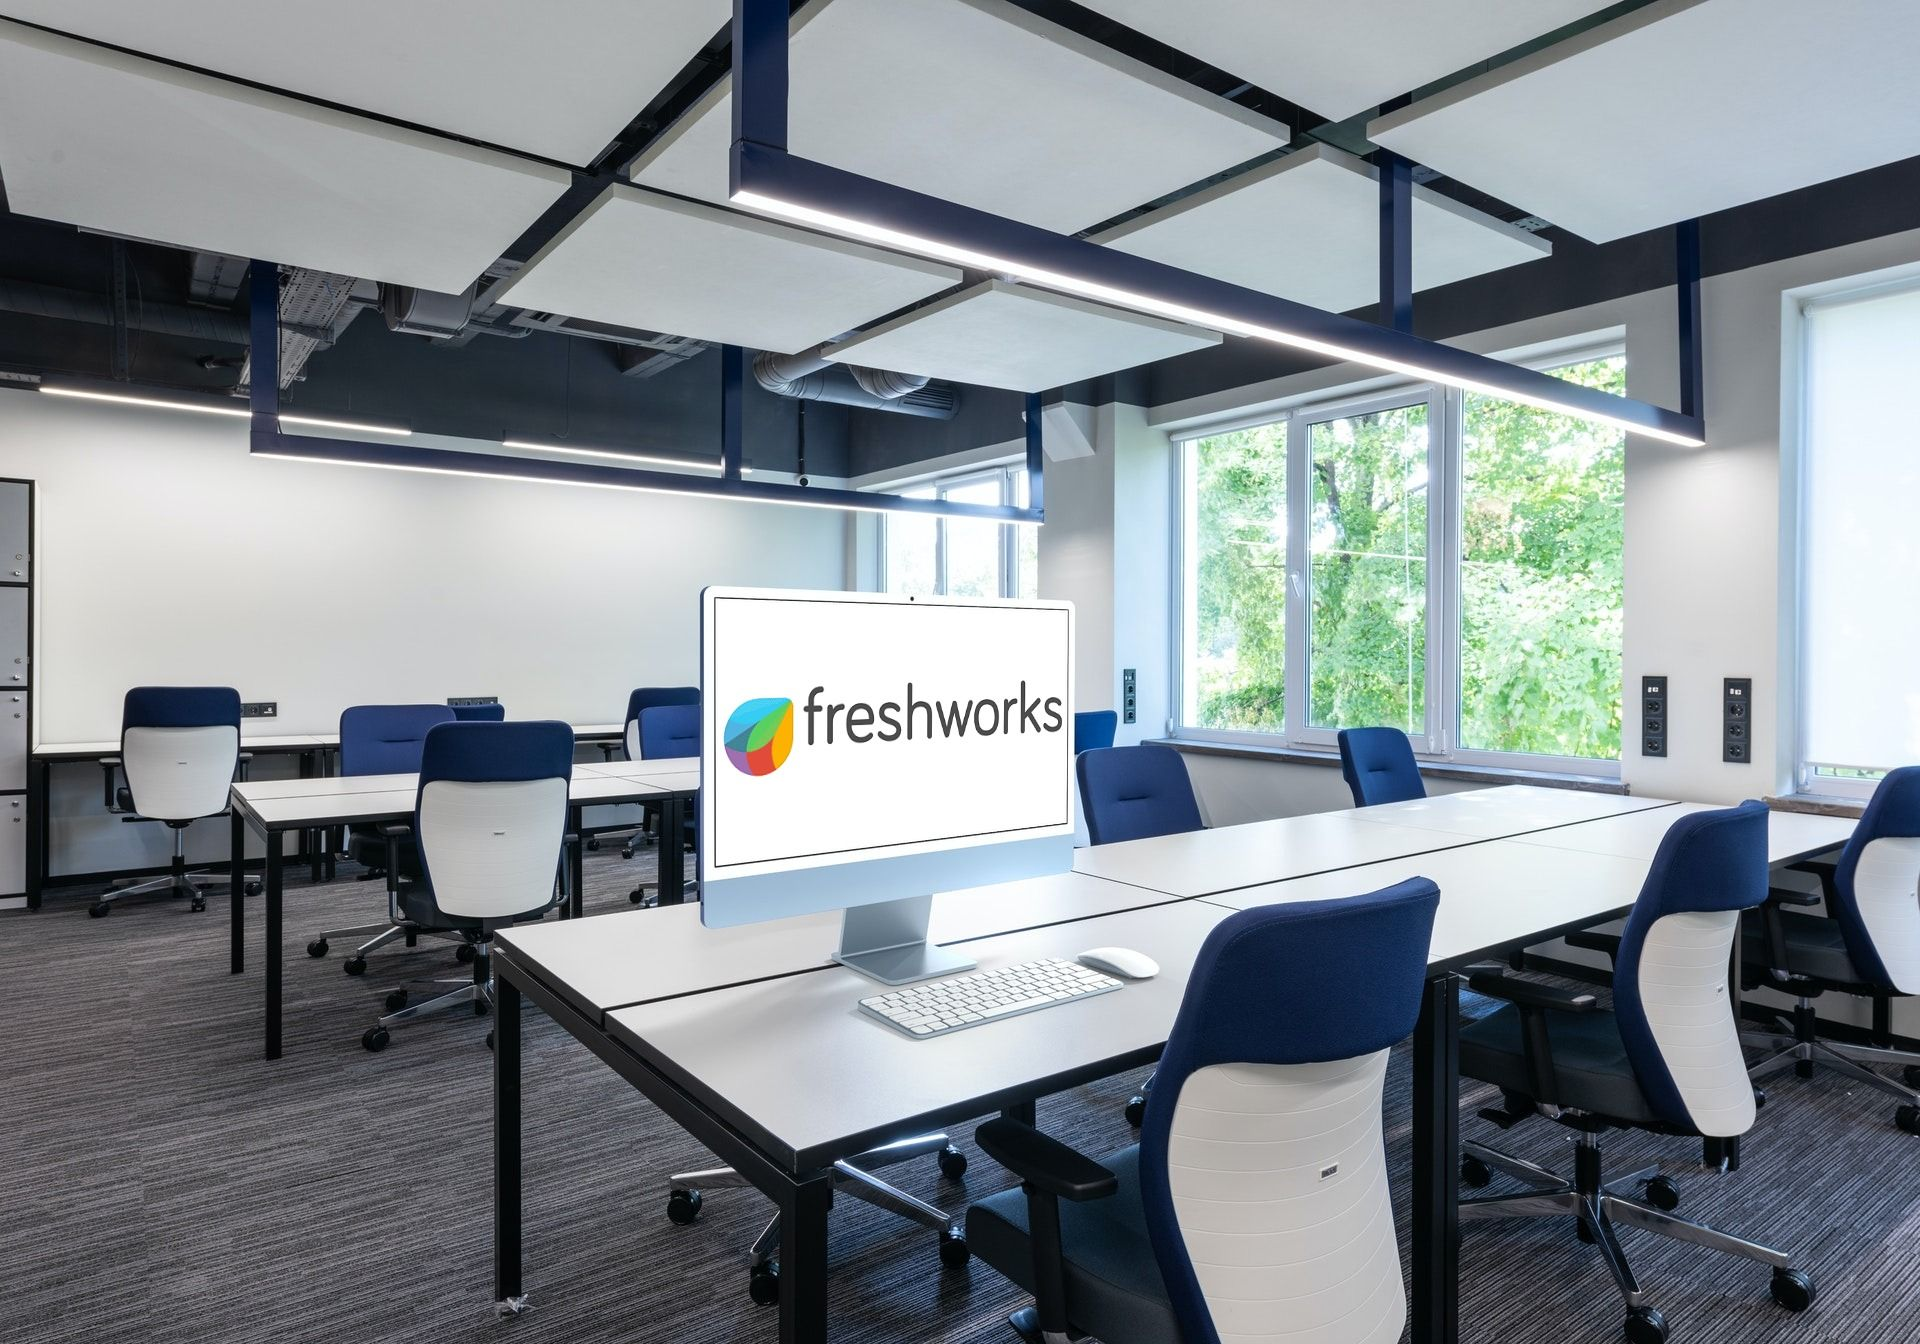 Freshworks Initial Public Offering